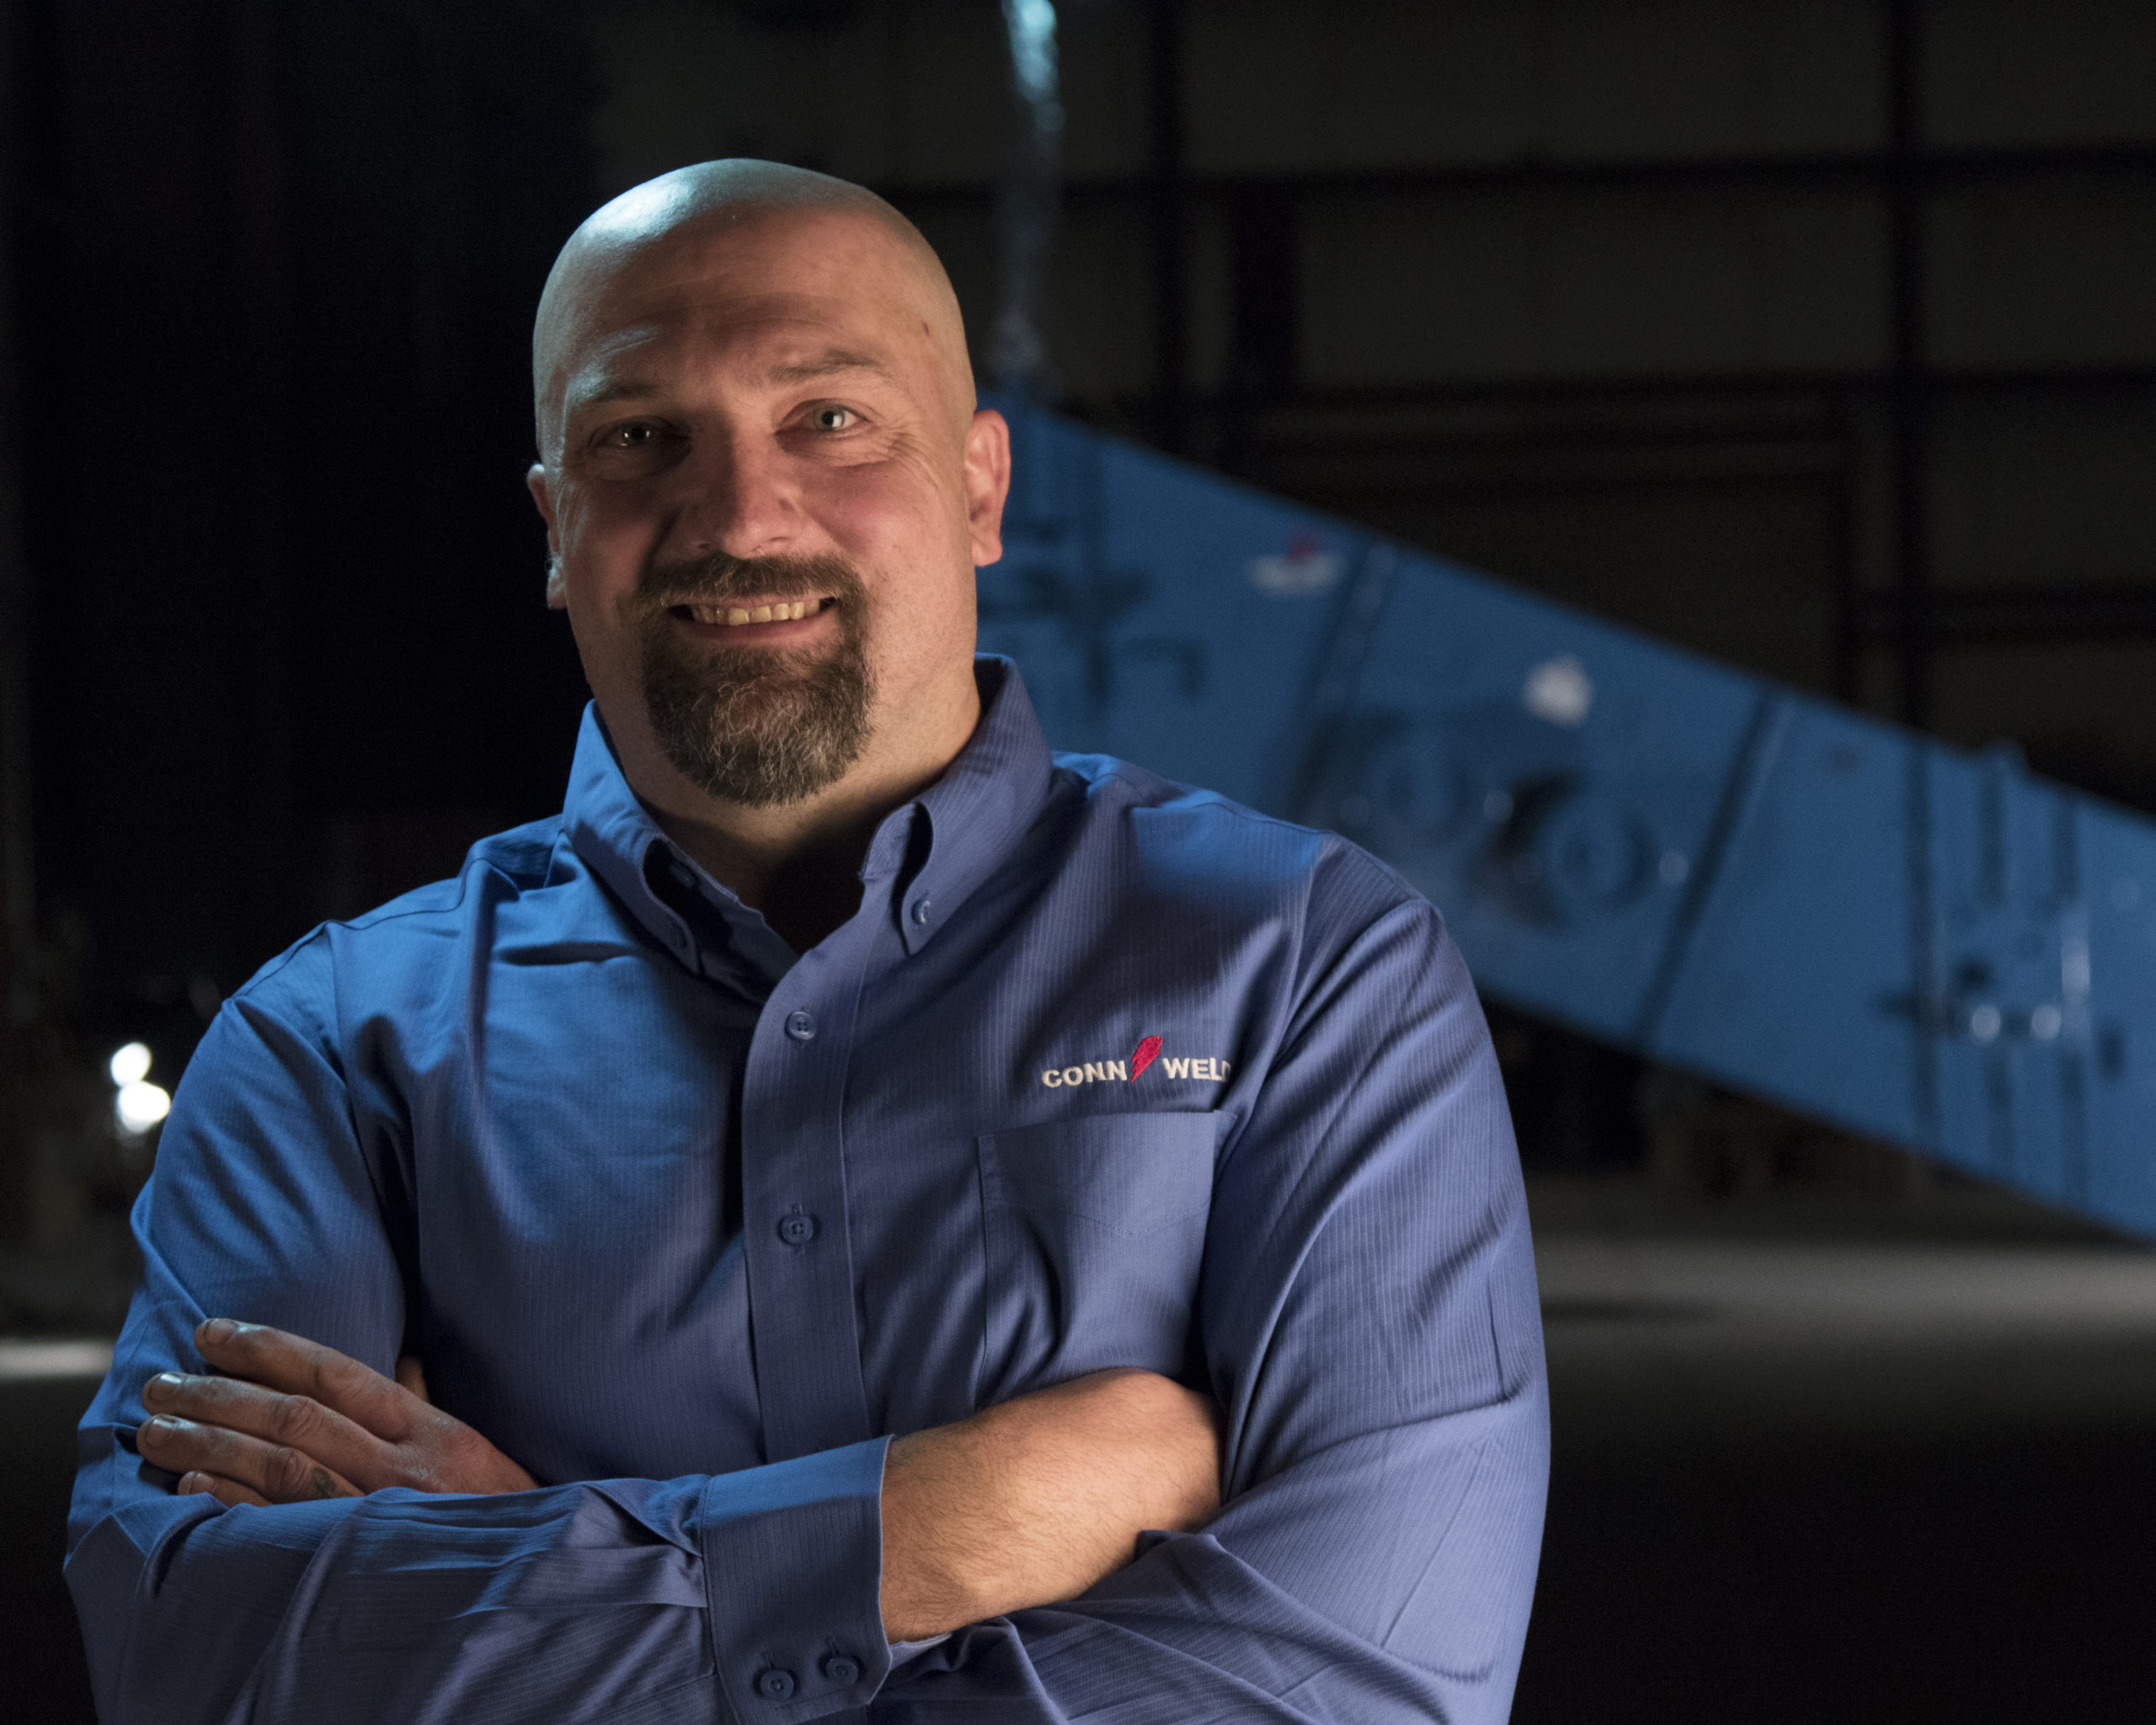 Conn-Weld man in blue shirt arms crossed smiling